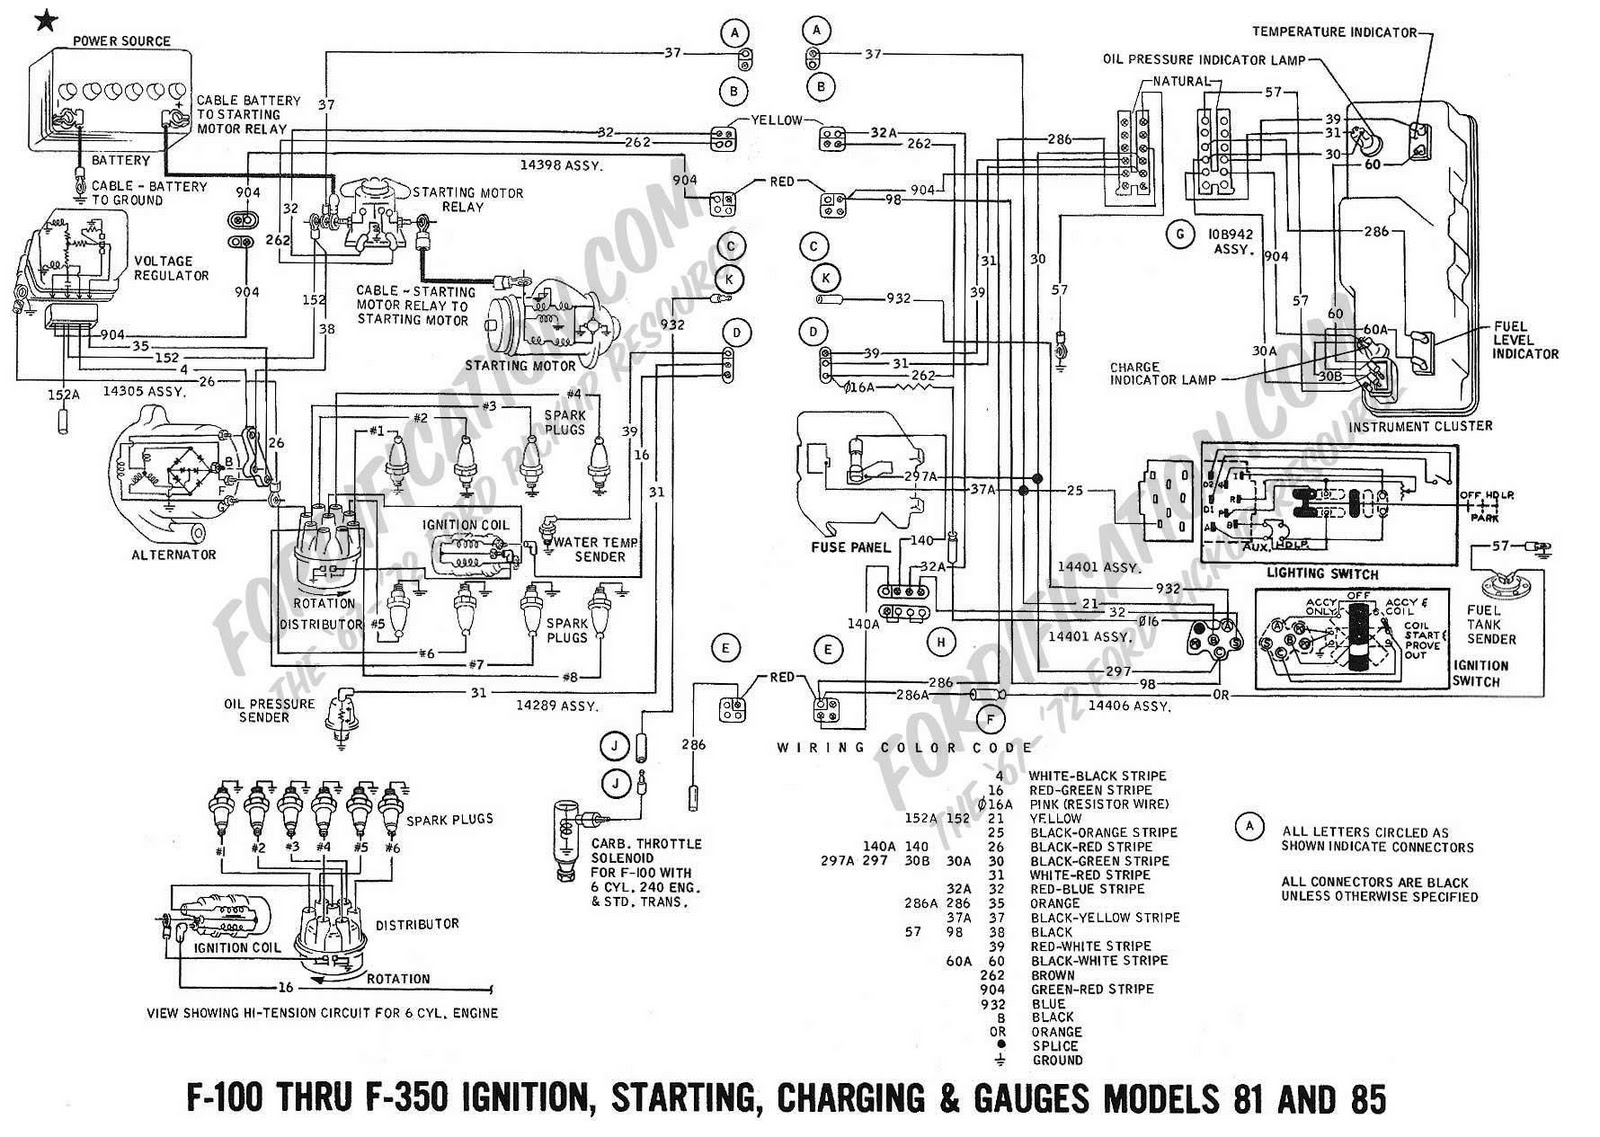 1977 Corvette Steering Column Diagram, 1977, Free Engine